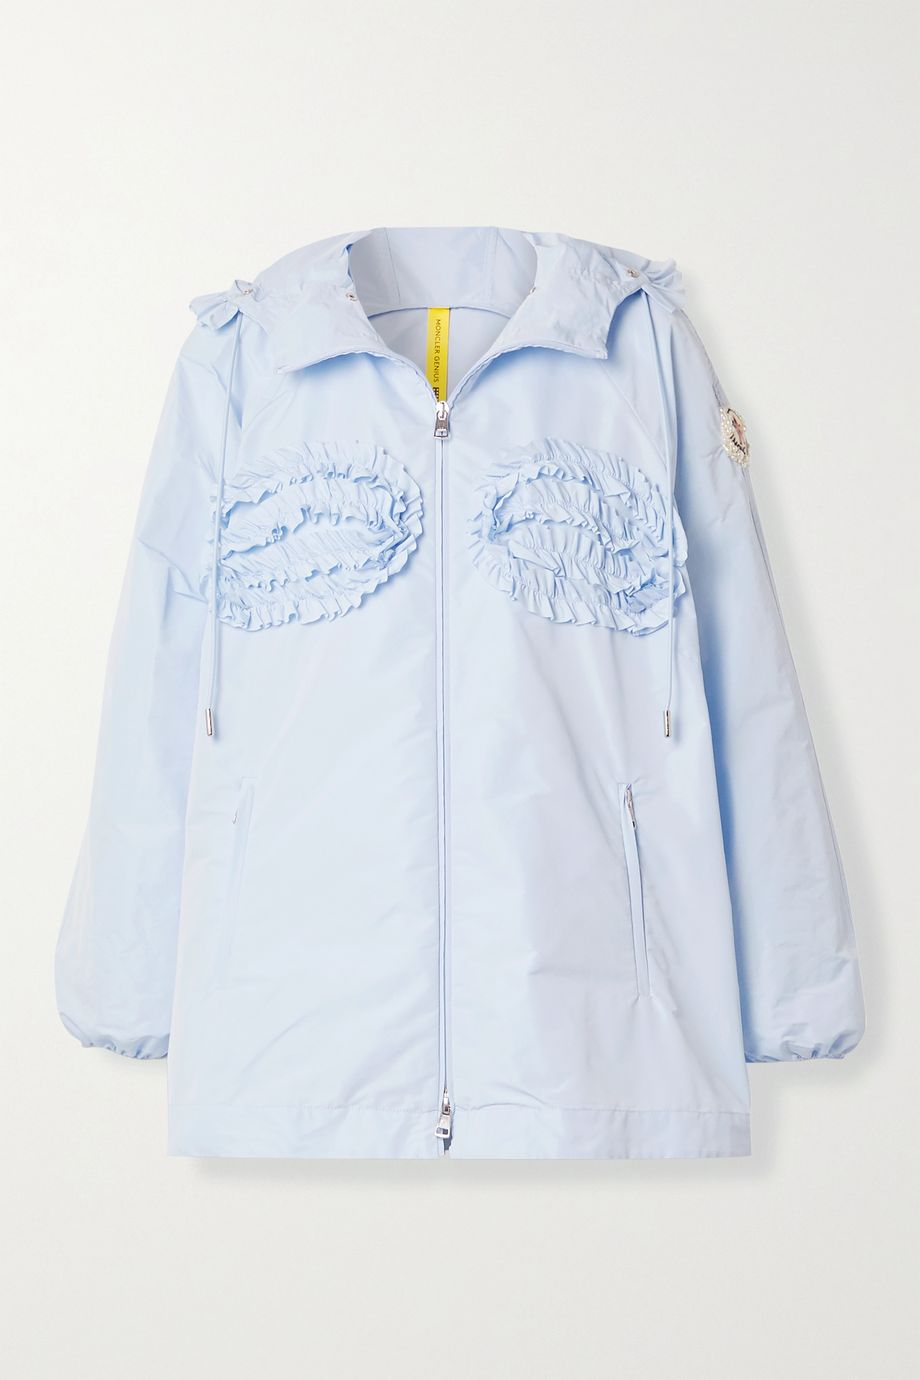 Moncler Genius + 4 Simone Rocha Nervillia hooded ruffled shell jacket